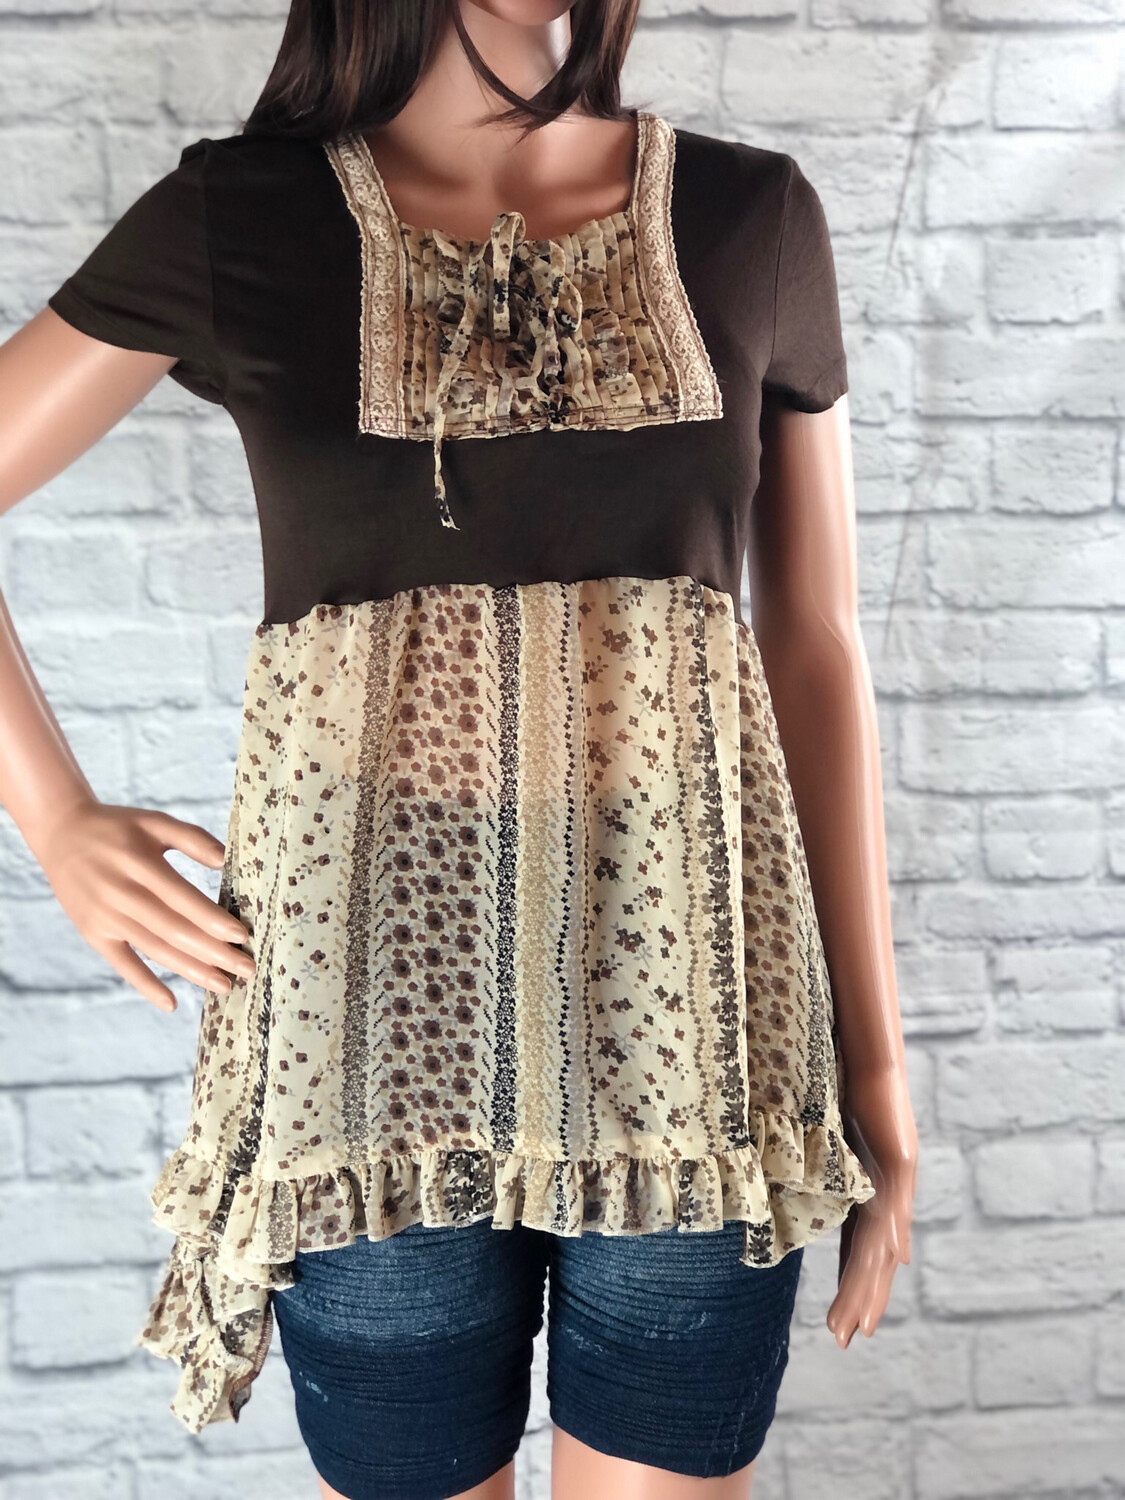 S Threads Upcycled Top Tshirt Blouse Short Sleeve Sheer Boho Ruffle Lace Up Size S/M/L